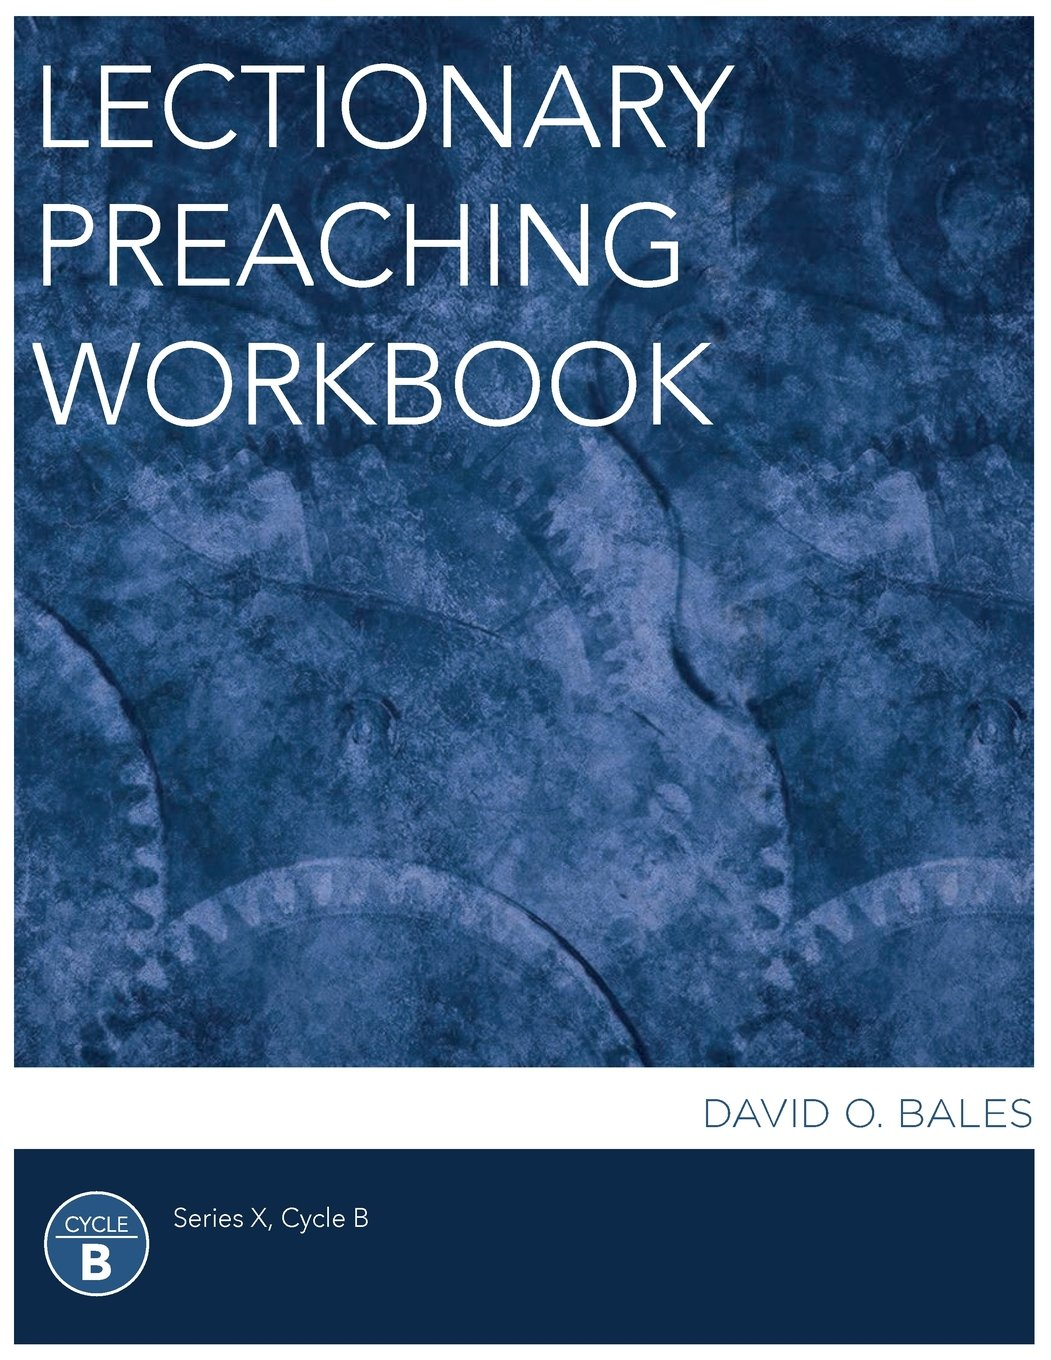 Download Lectionary Preaching Workbook, Series X, Cycle B ebook